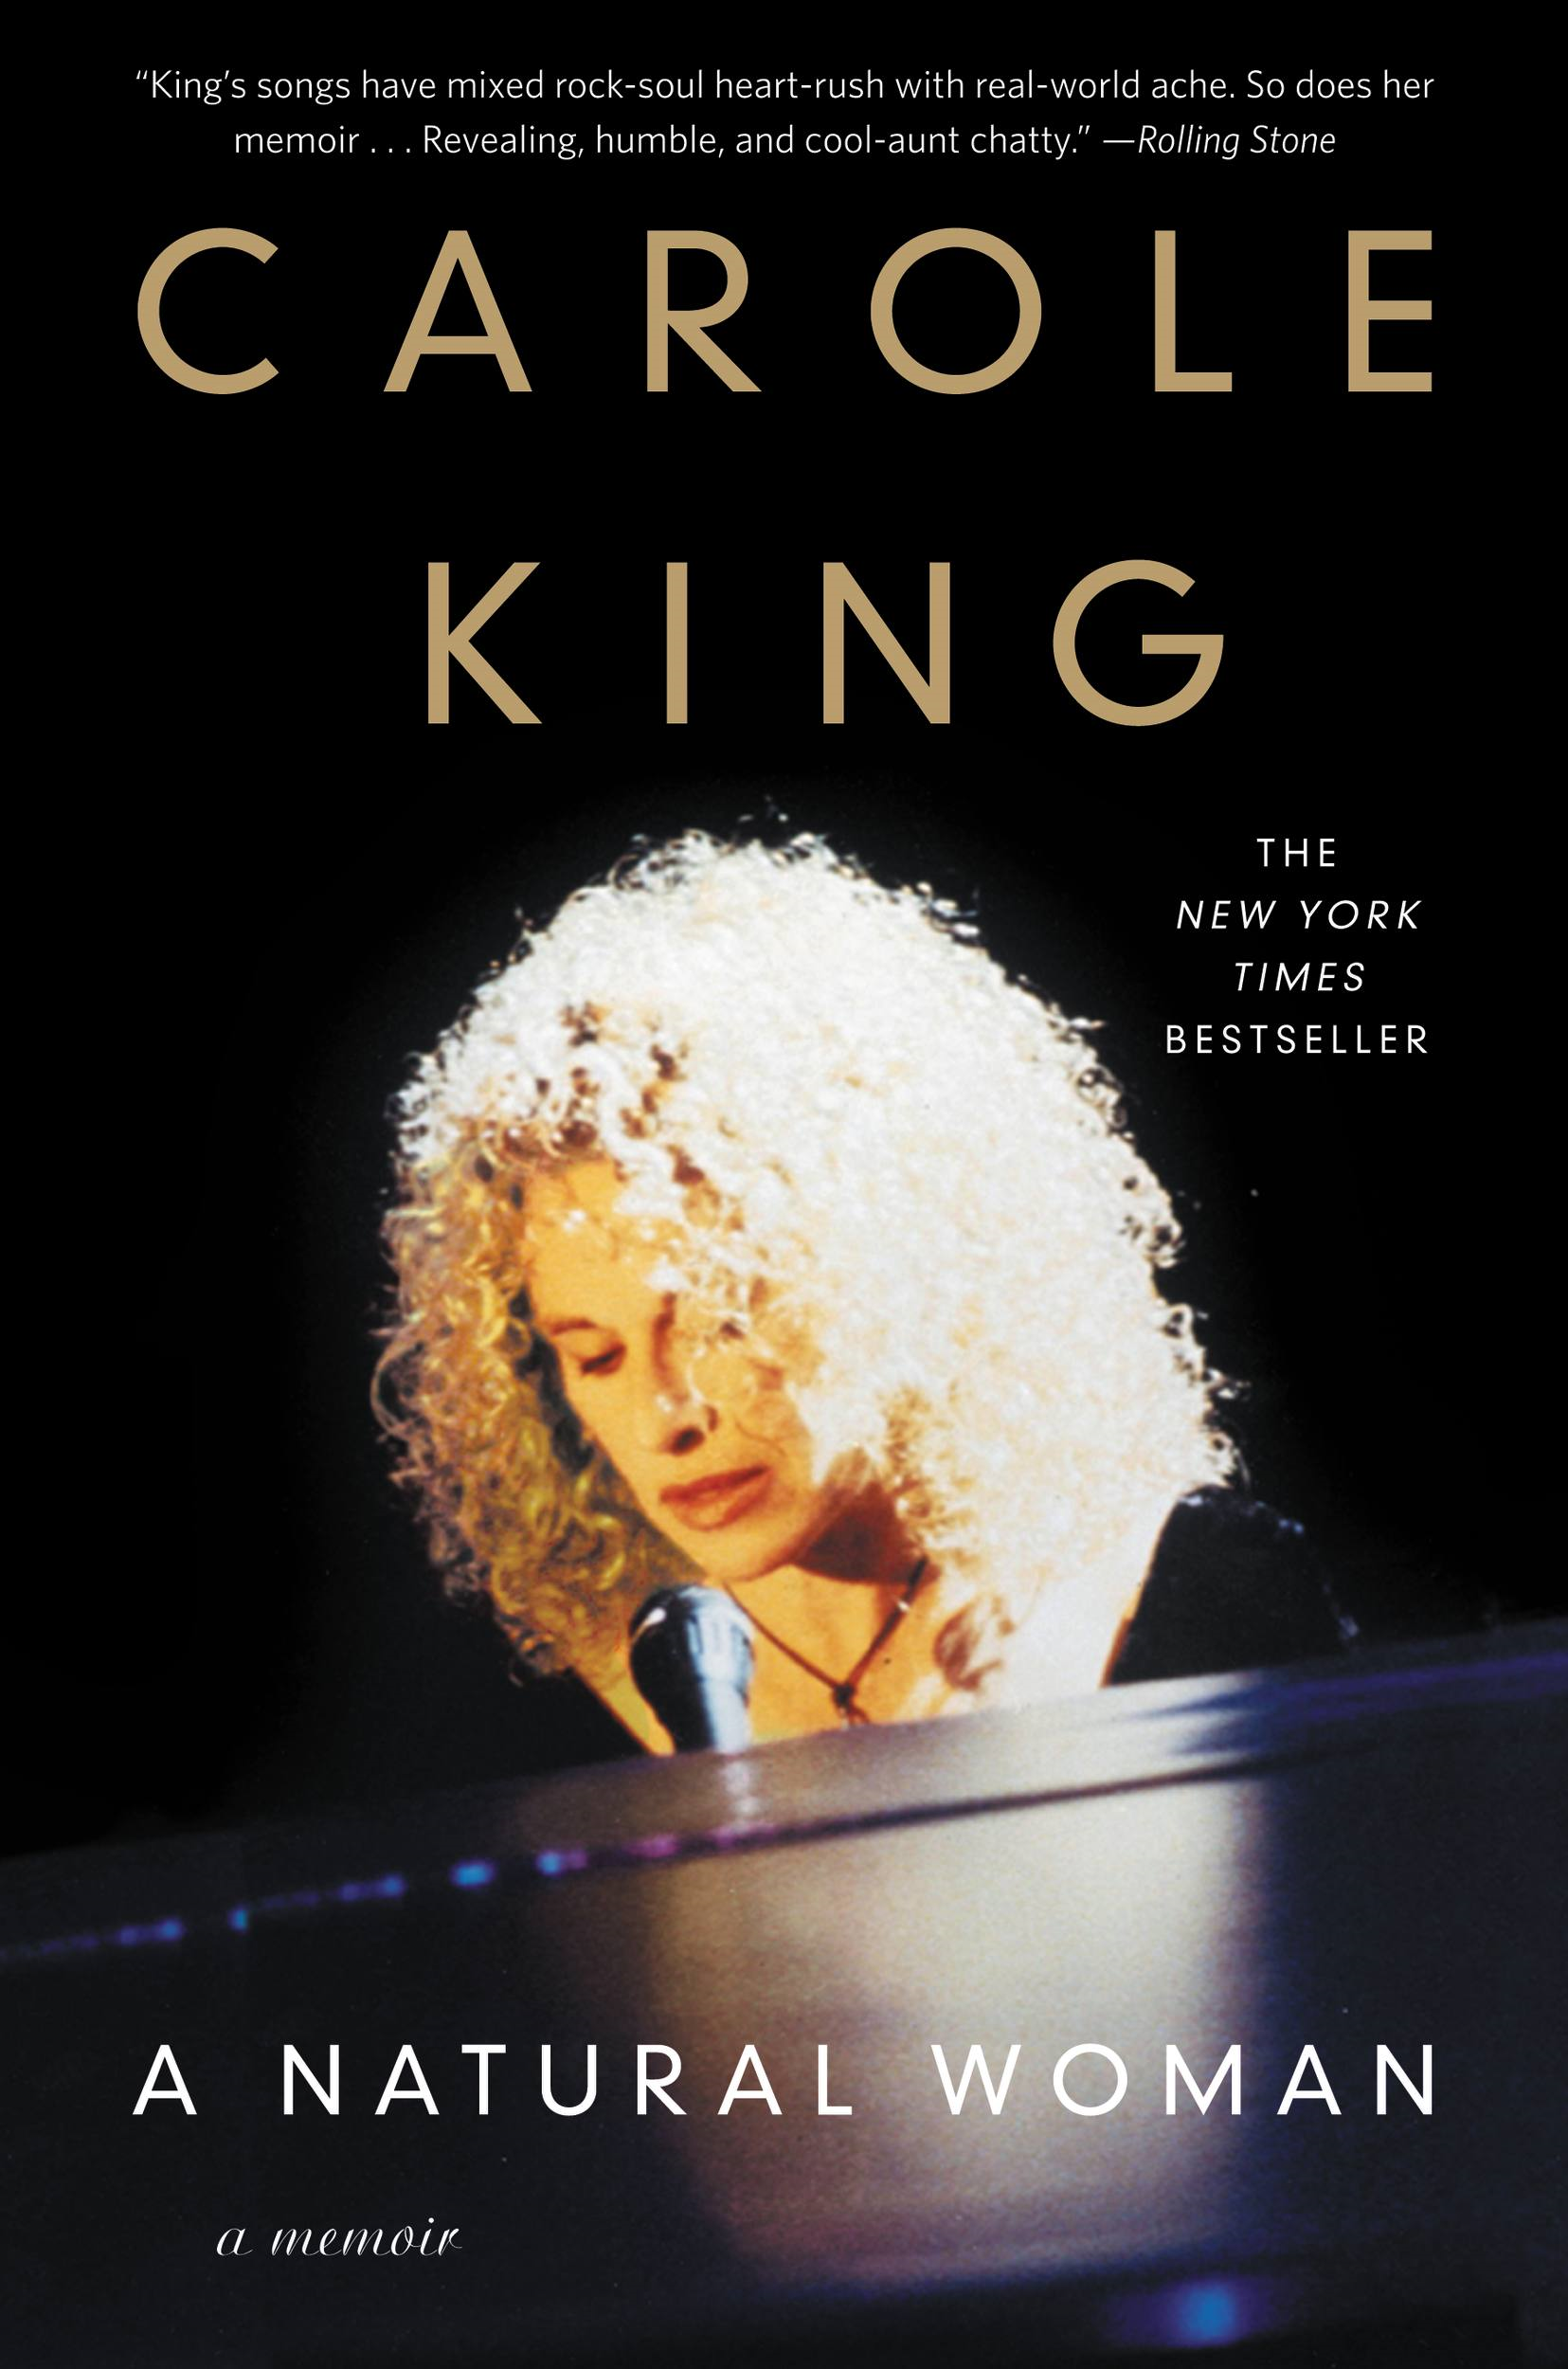 A Natural Woman: A Memoir By: Carole King